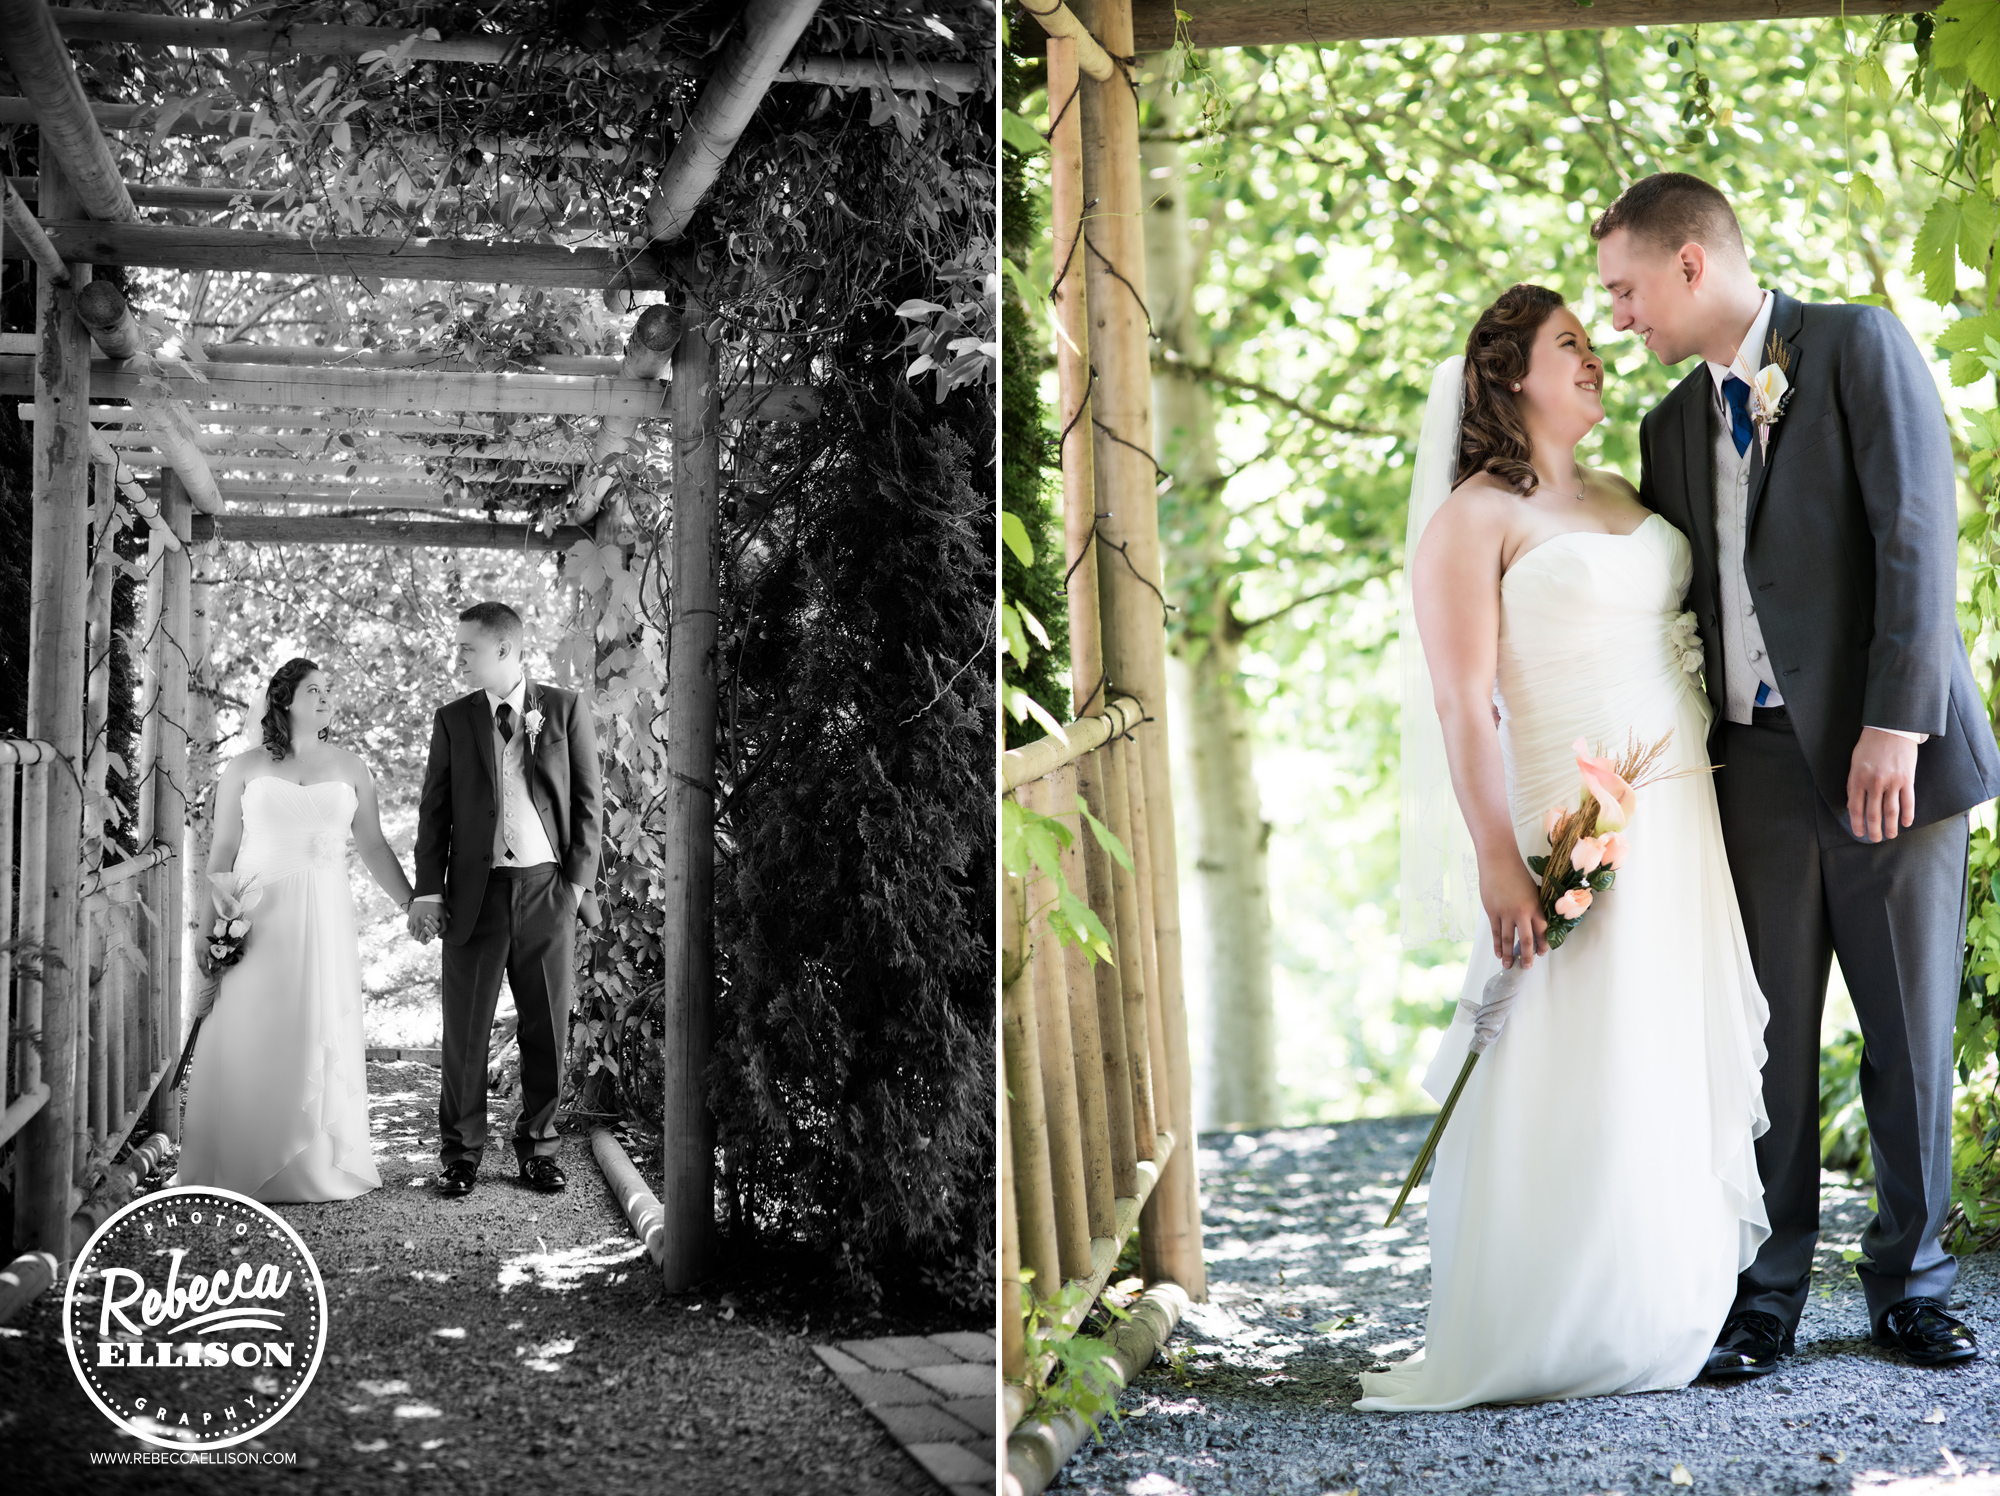 Outdoor wedding portraits at Snohomish wedding venue Jardin del sol featuring white strapless wedding dress photographed by Rebecca Ellison Photography